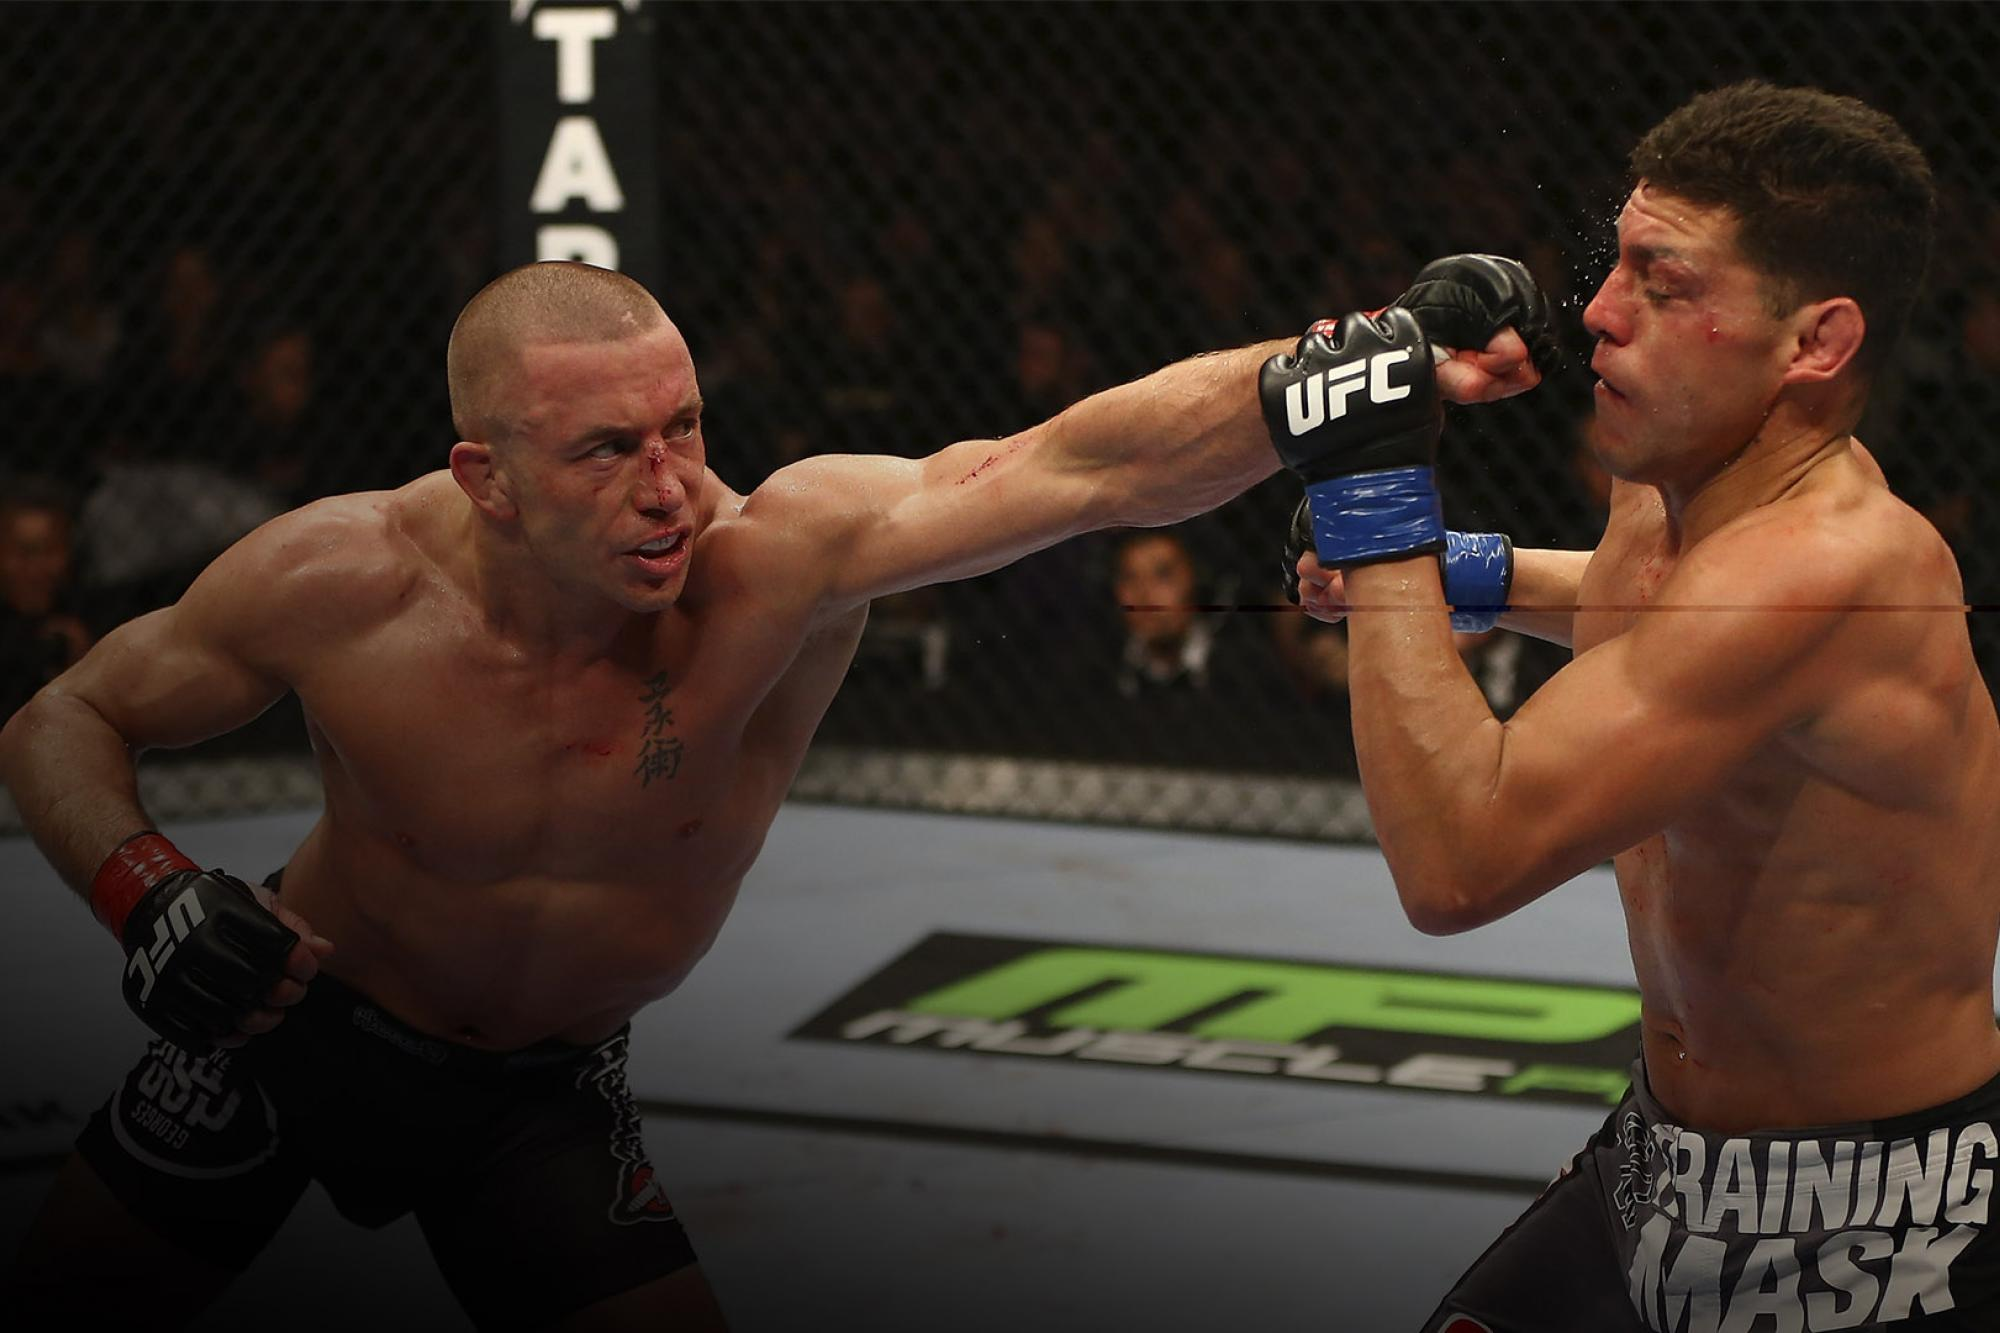 This Day in UFC History: UFC 158 | UFC